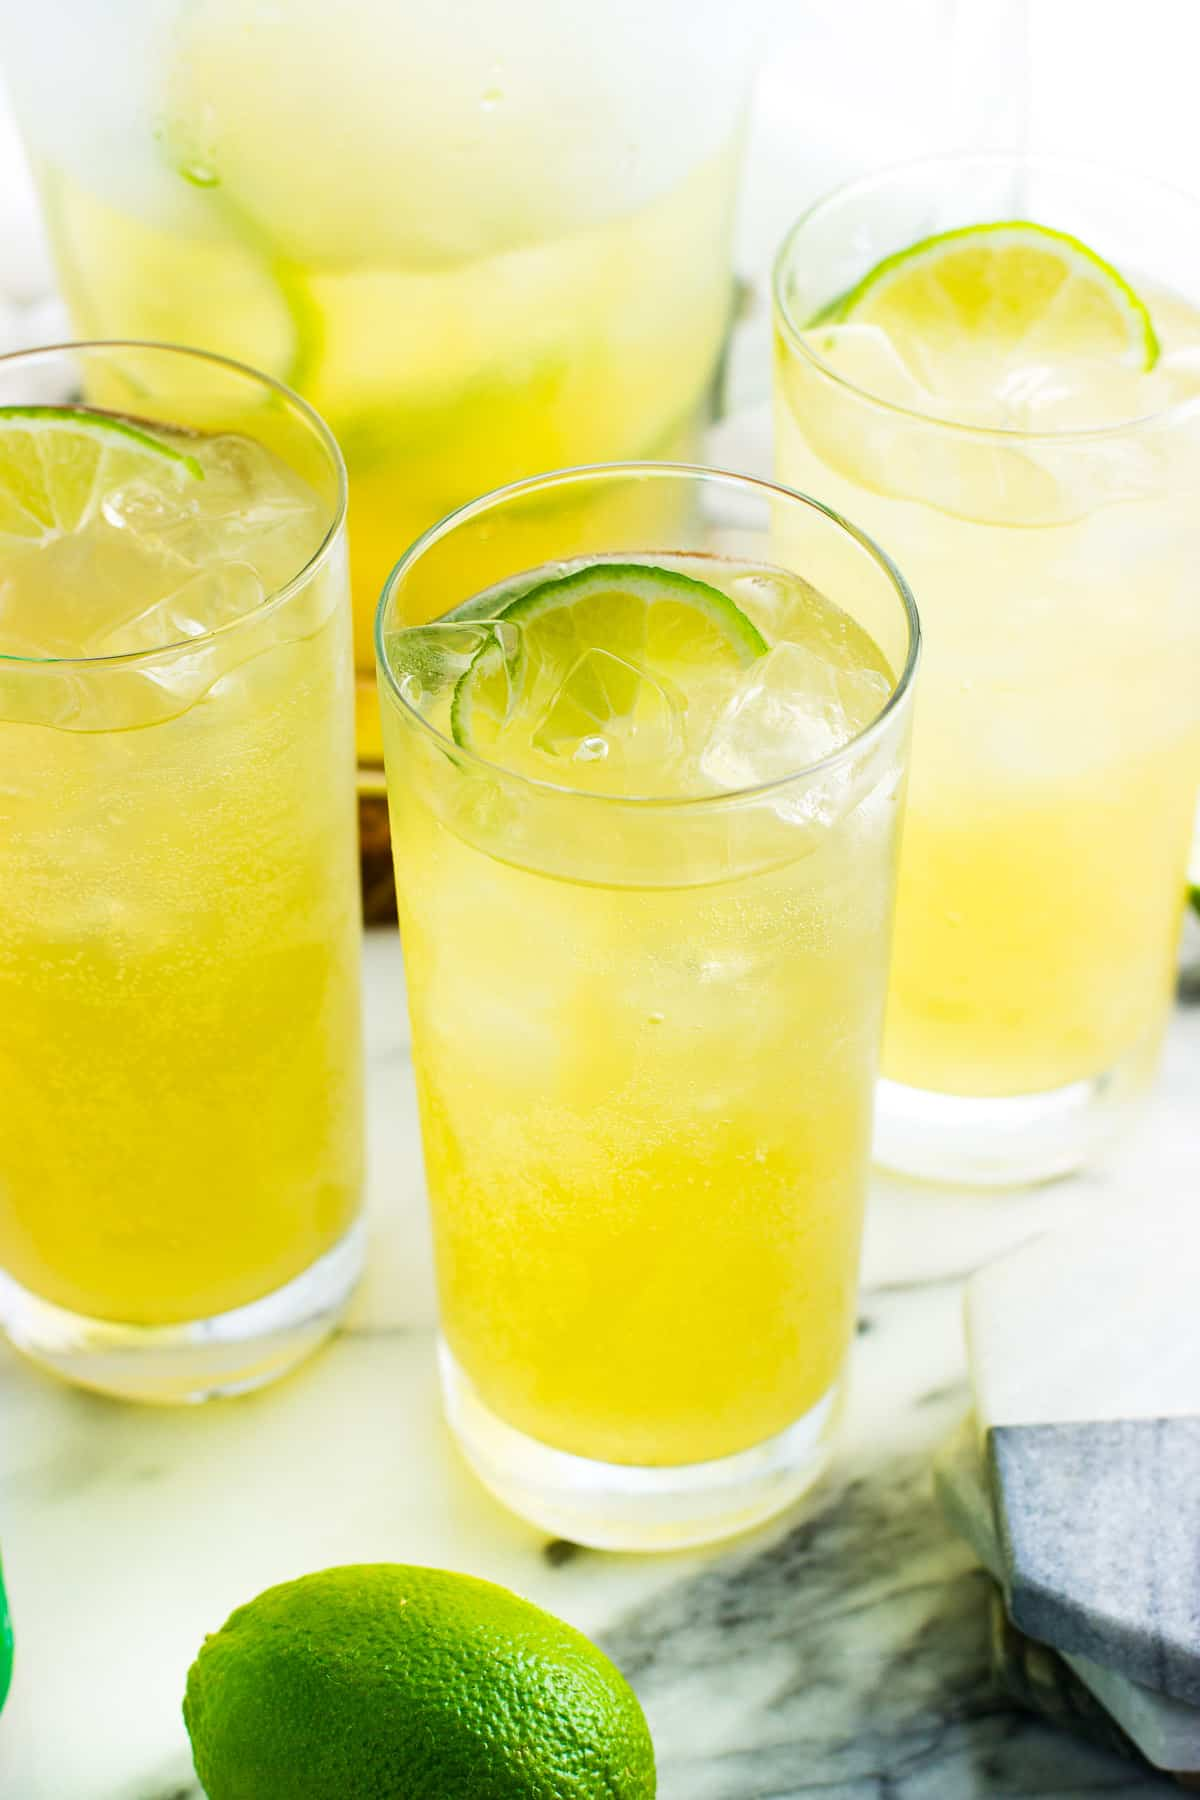 Mocktails in tall glasses with a half-full pitcher, fresh limes, and a stack of marble coasters